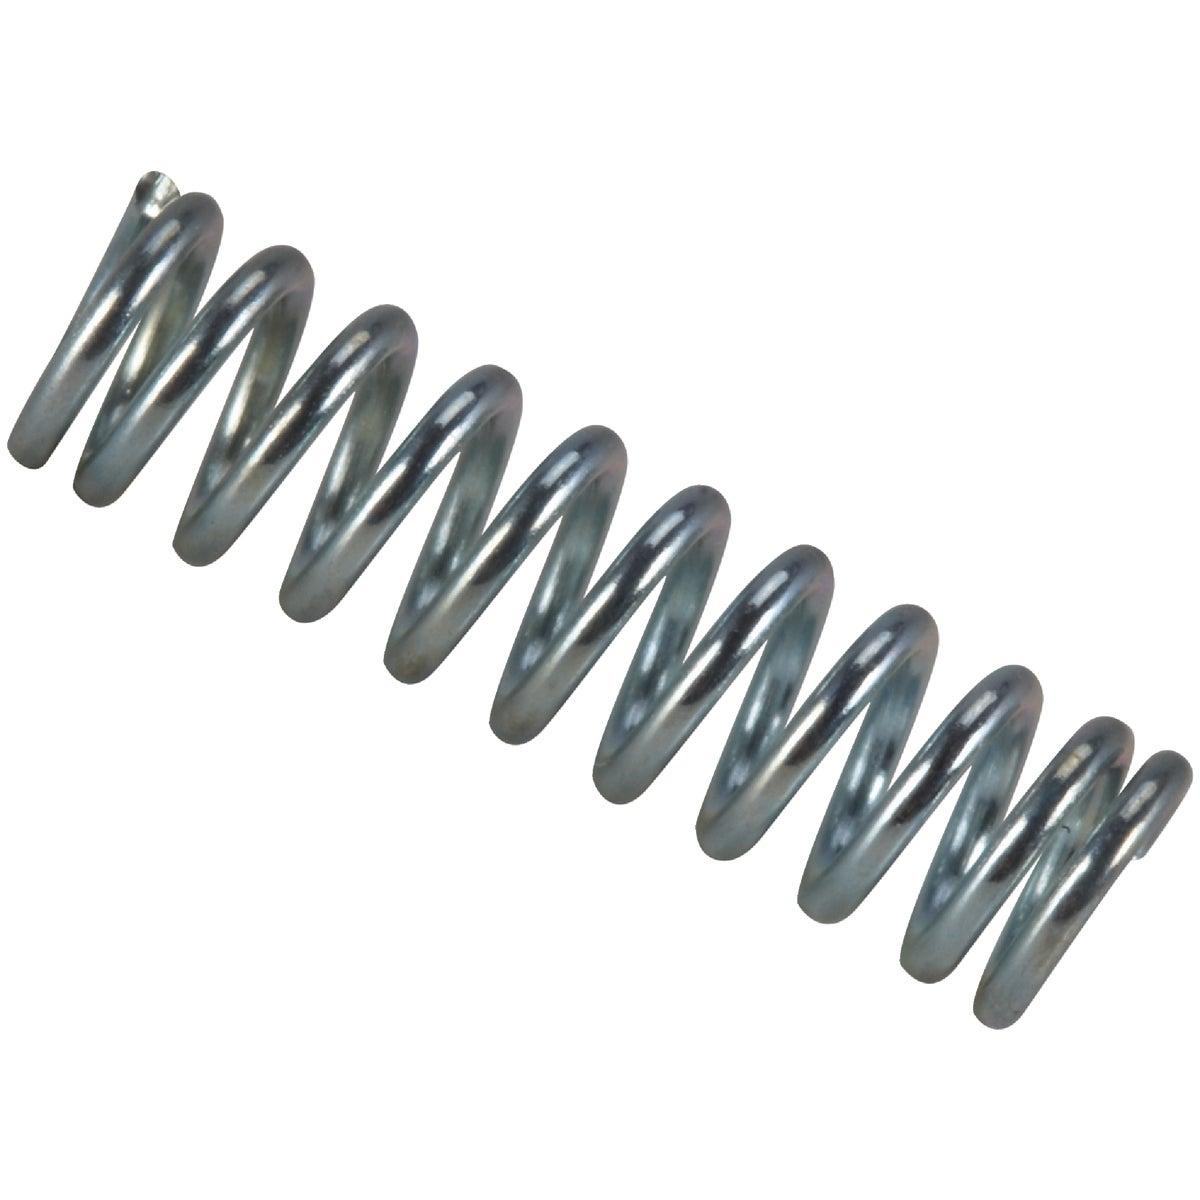 COMPRESSION SPRING - C-582 by Century Spring Corp